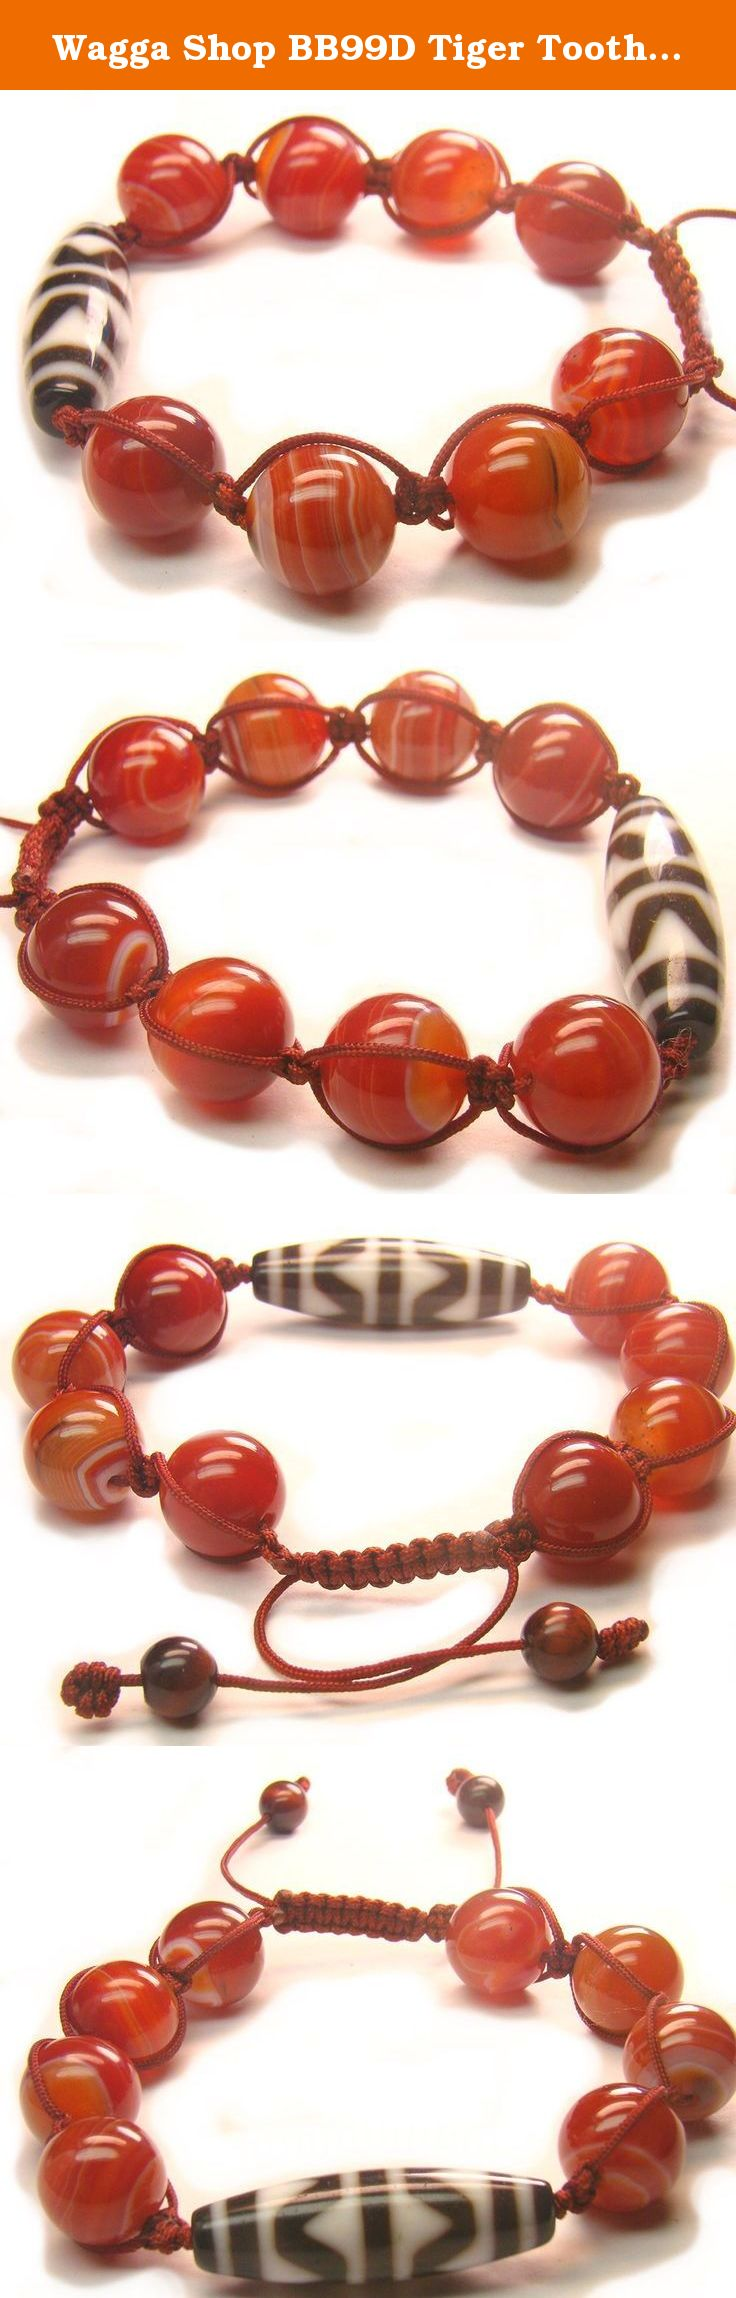 Wagga Shop BB99D Tiger Tooth Motif Tibetan New Dzi Bead 14mm Dark Red Banded Agate Beads Knot Bracelet, Women Bracelet. Tiger Tooth Motif Tibetan New Dzi Bead Bracelet with 14mm Dark Red Banded Round Agate Beads and in flexible wrist size Chinese Knot .